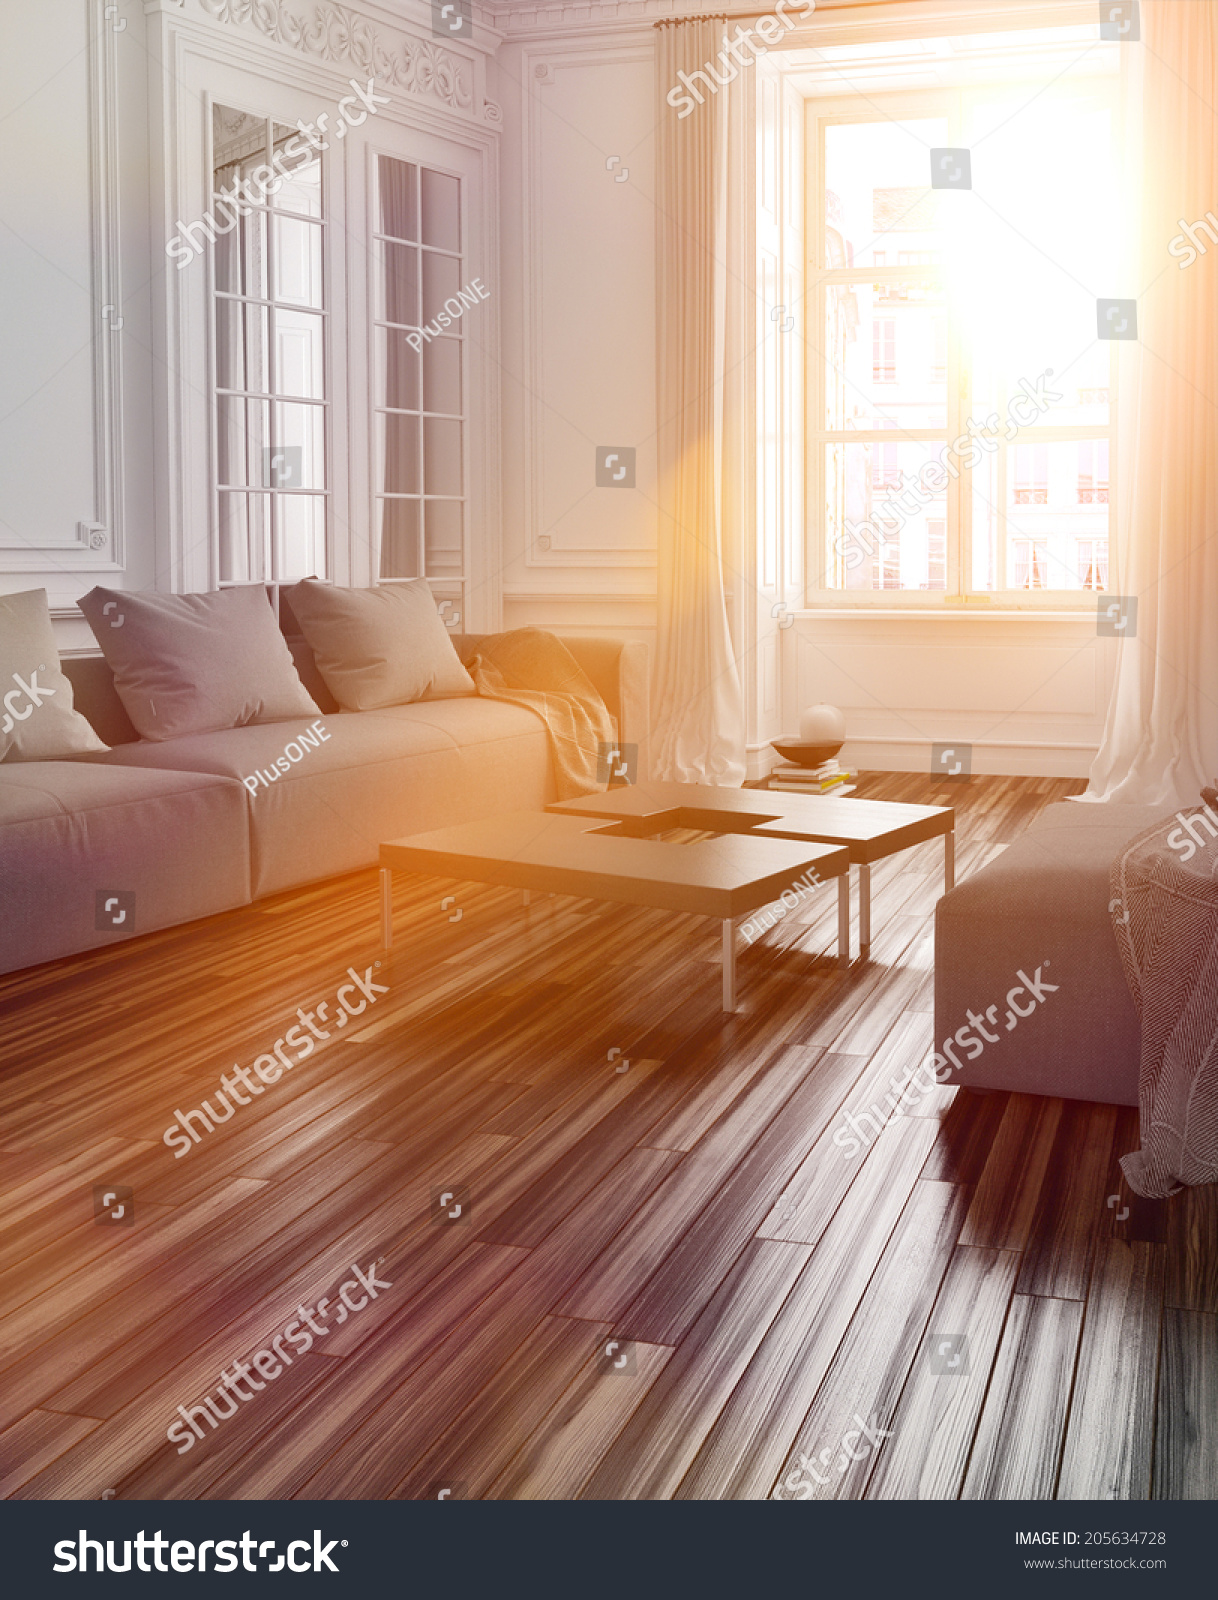 Bright Sunlight Streaming Into A Living Room Interior With